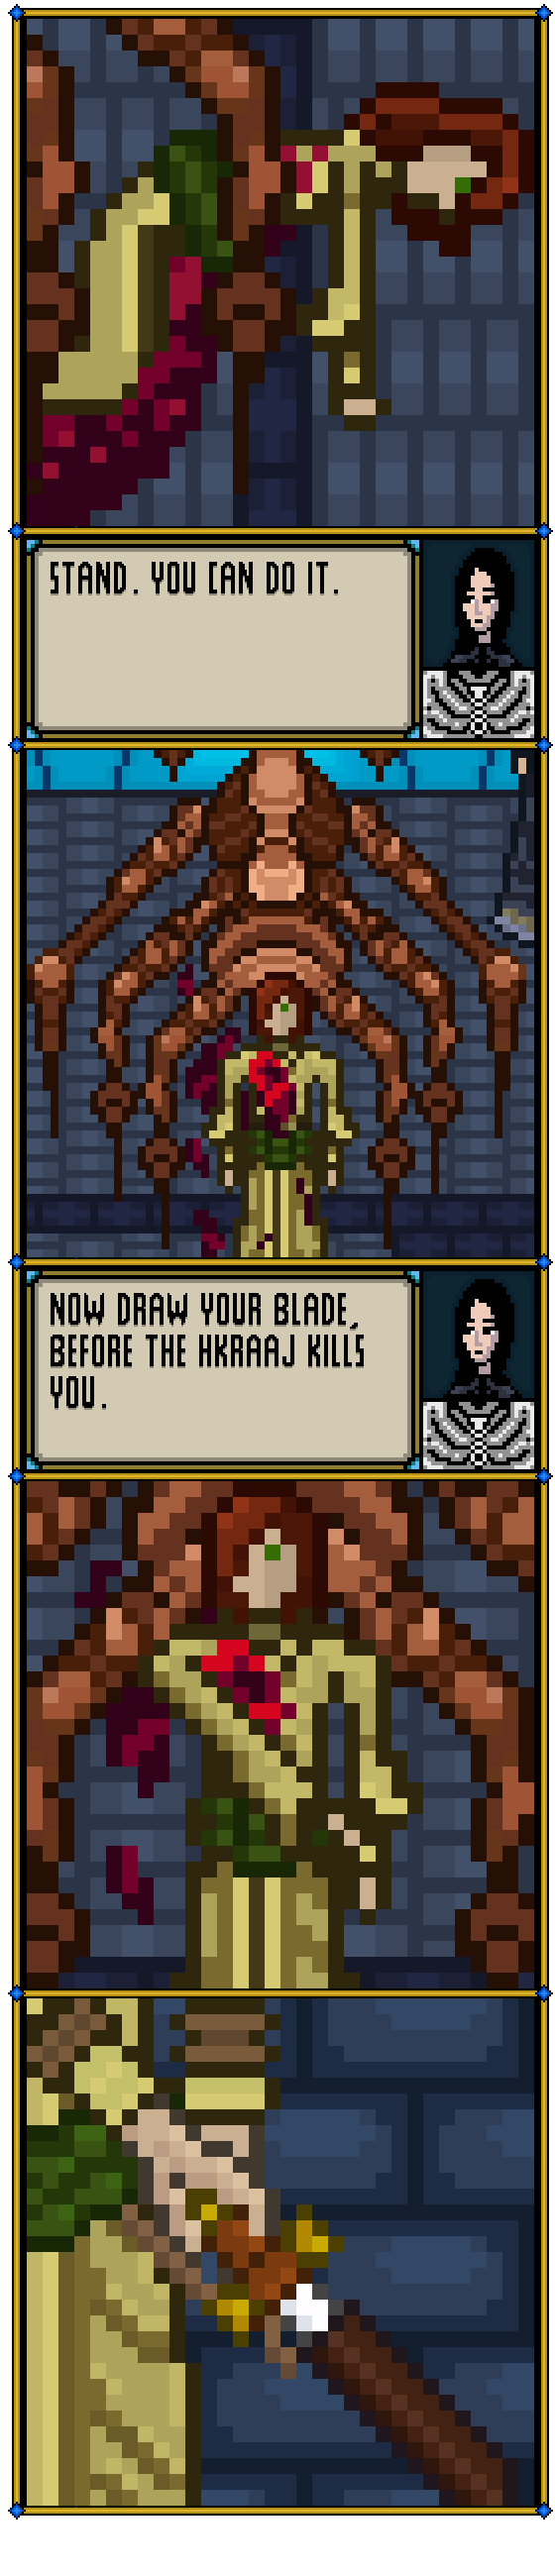 Draw Your Blade